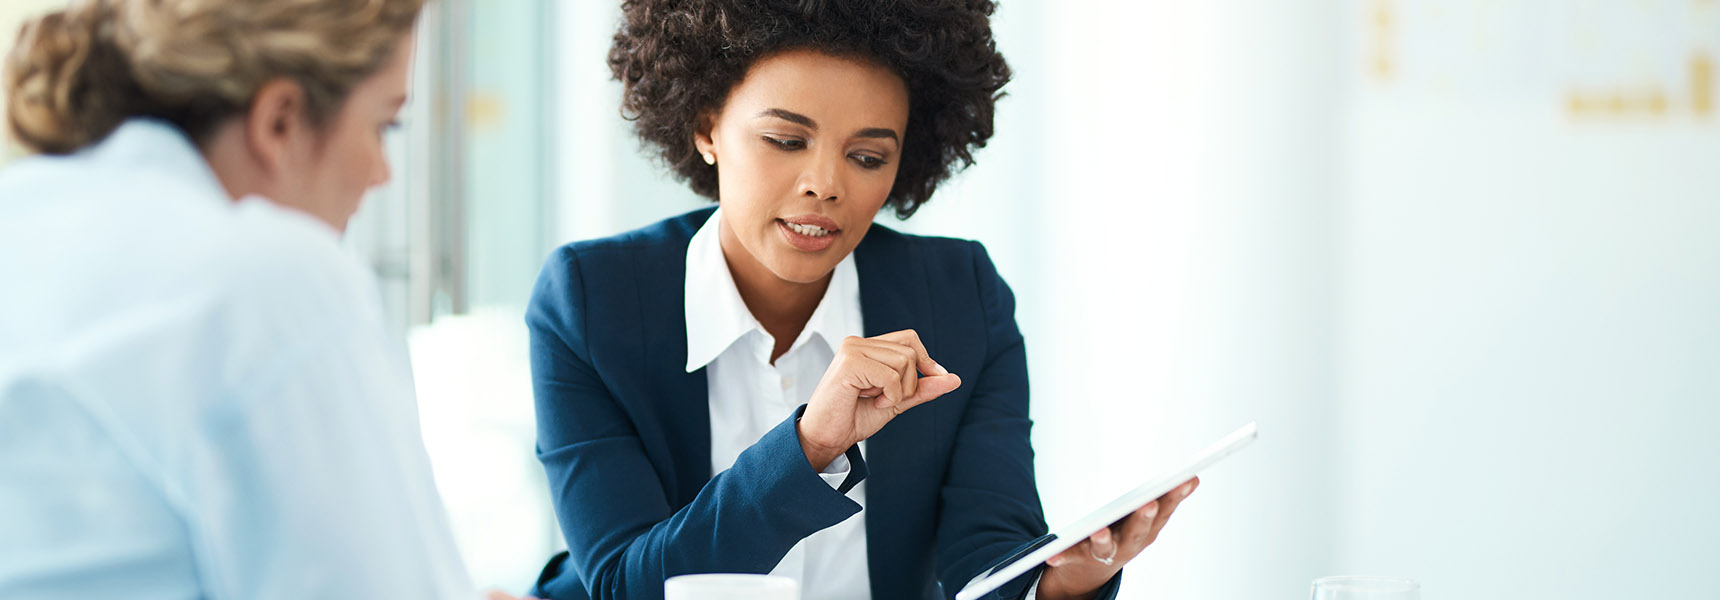 Photo of two women reviewing information.